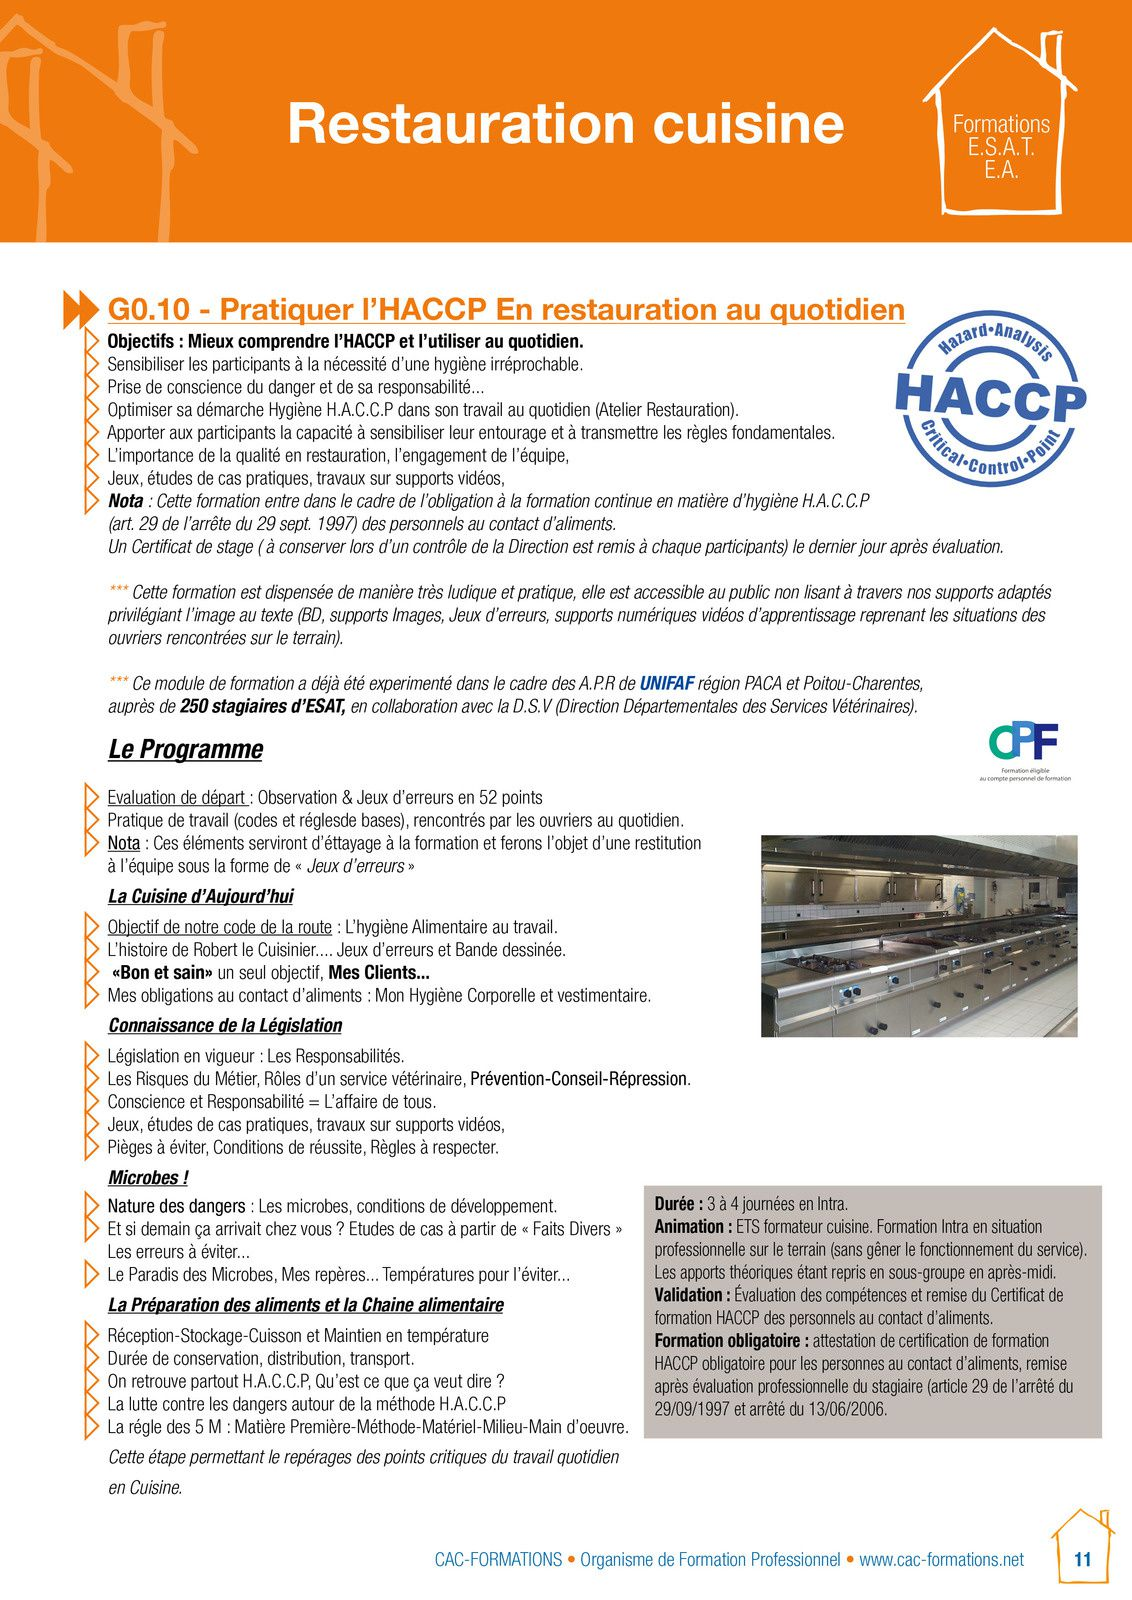 toutes nos formations sont sur wwwcac-formations.net